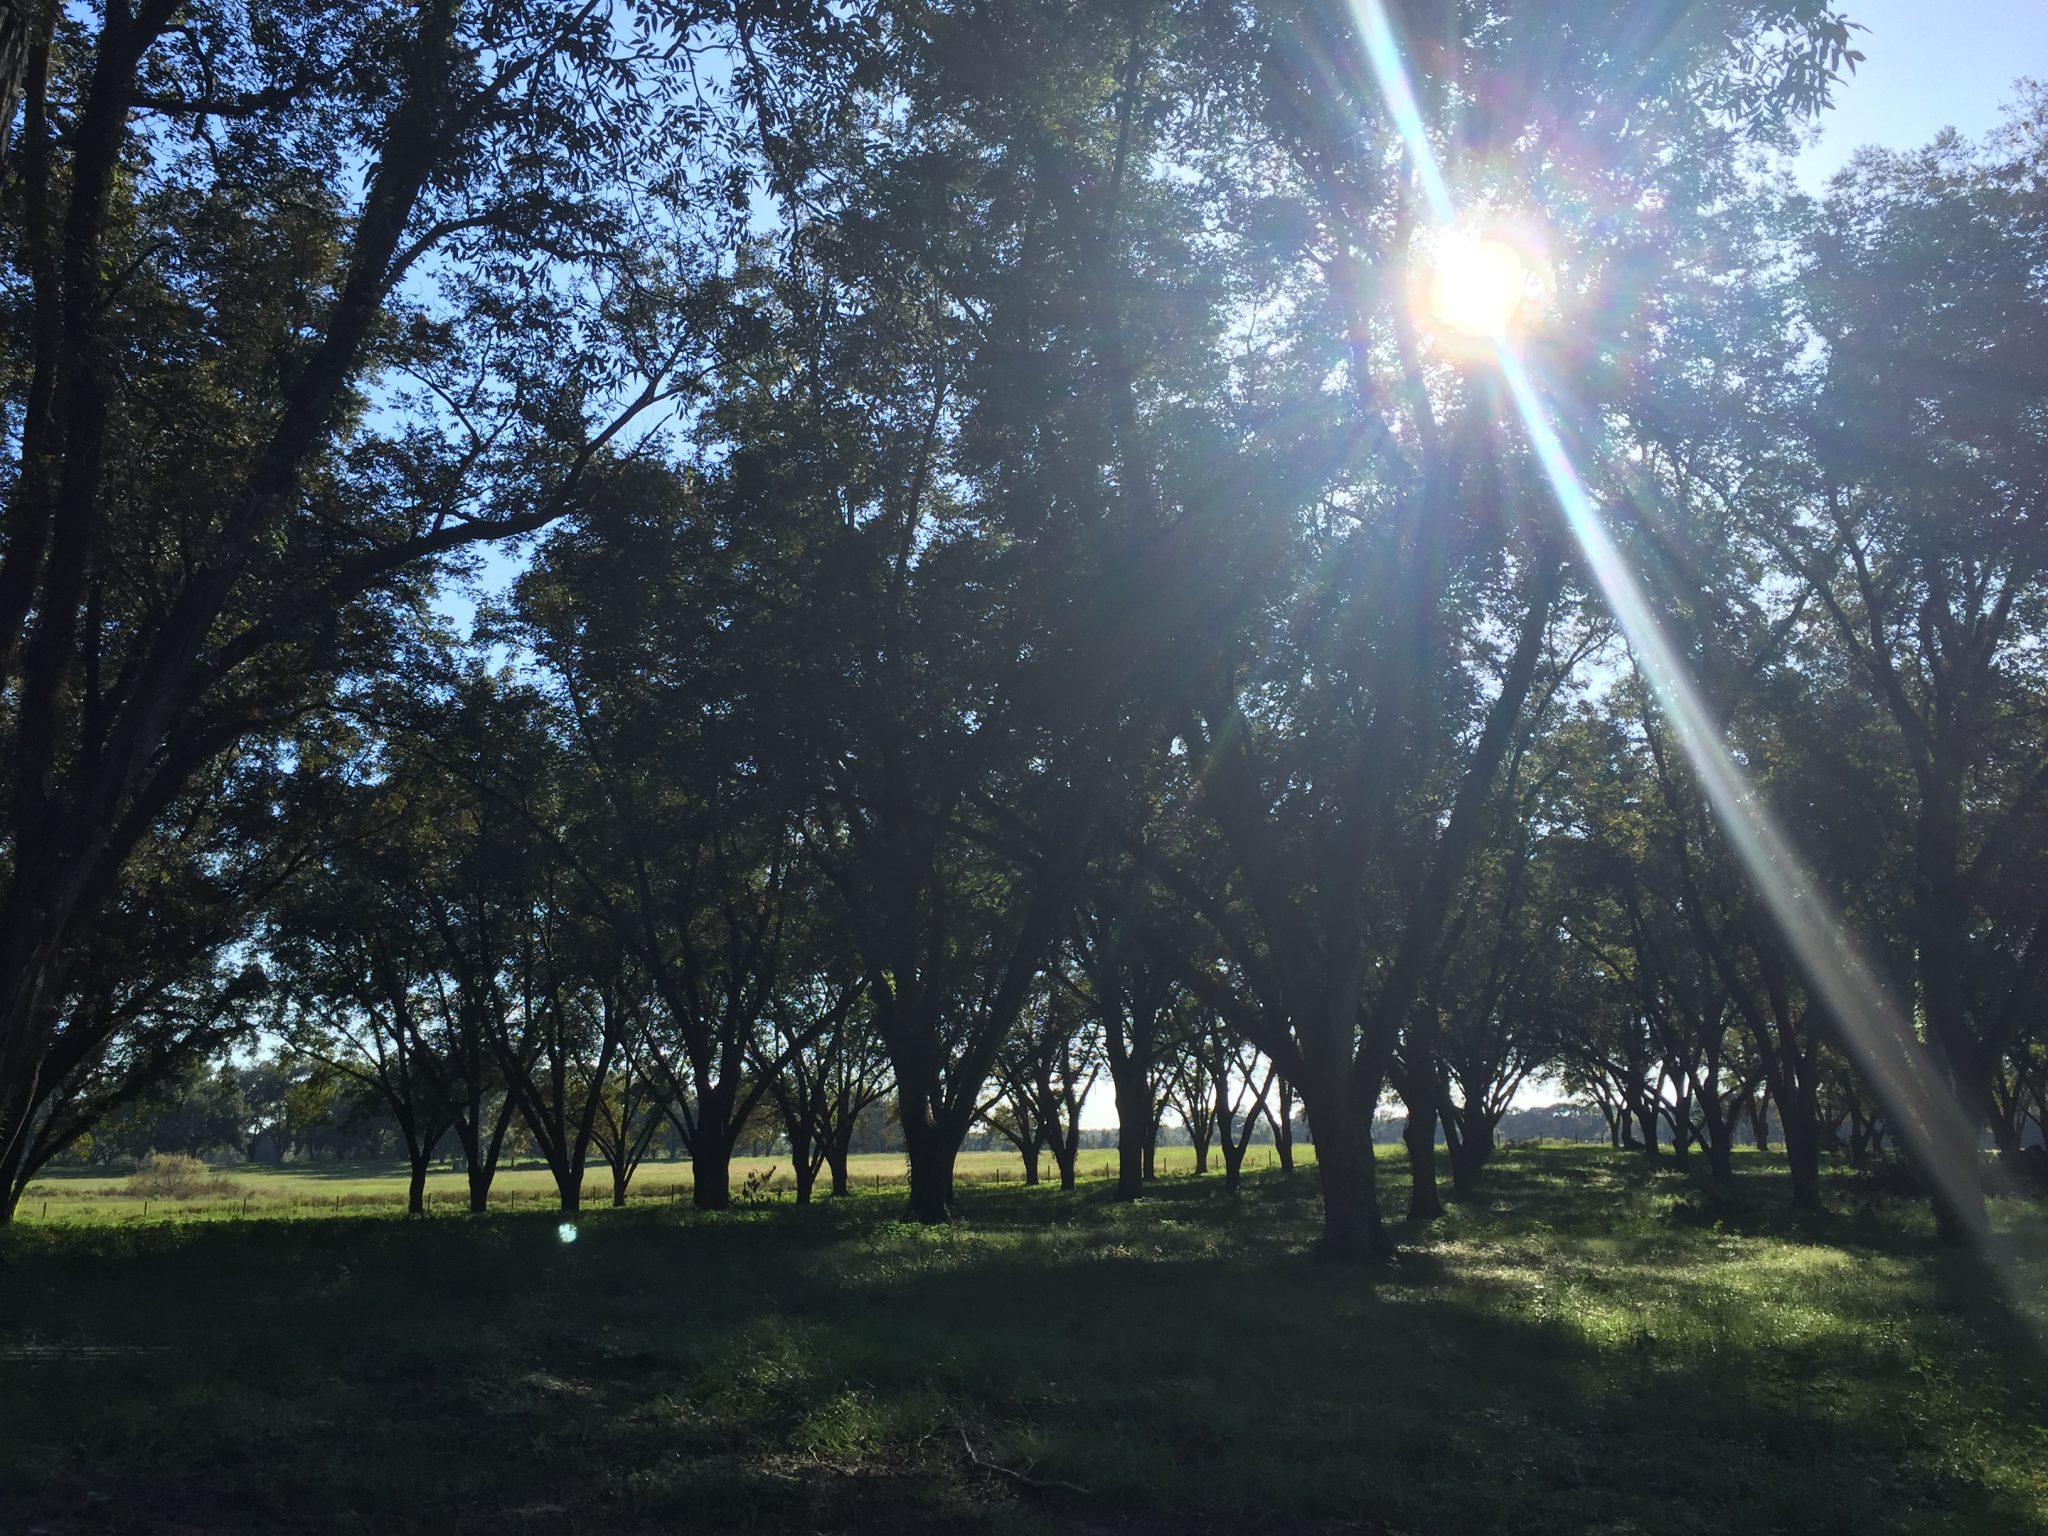 pecan trees in a pecan orchard